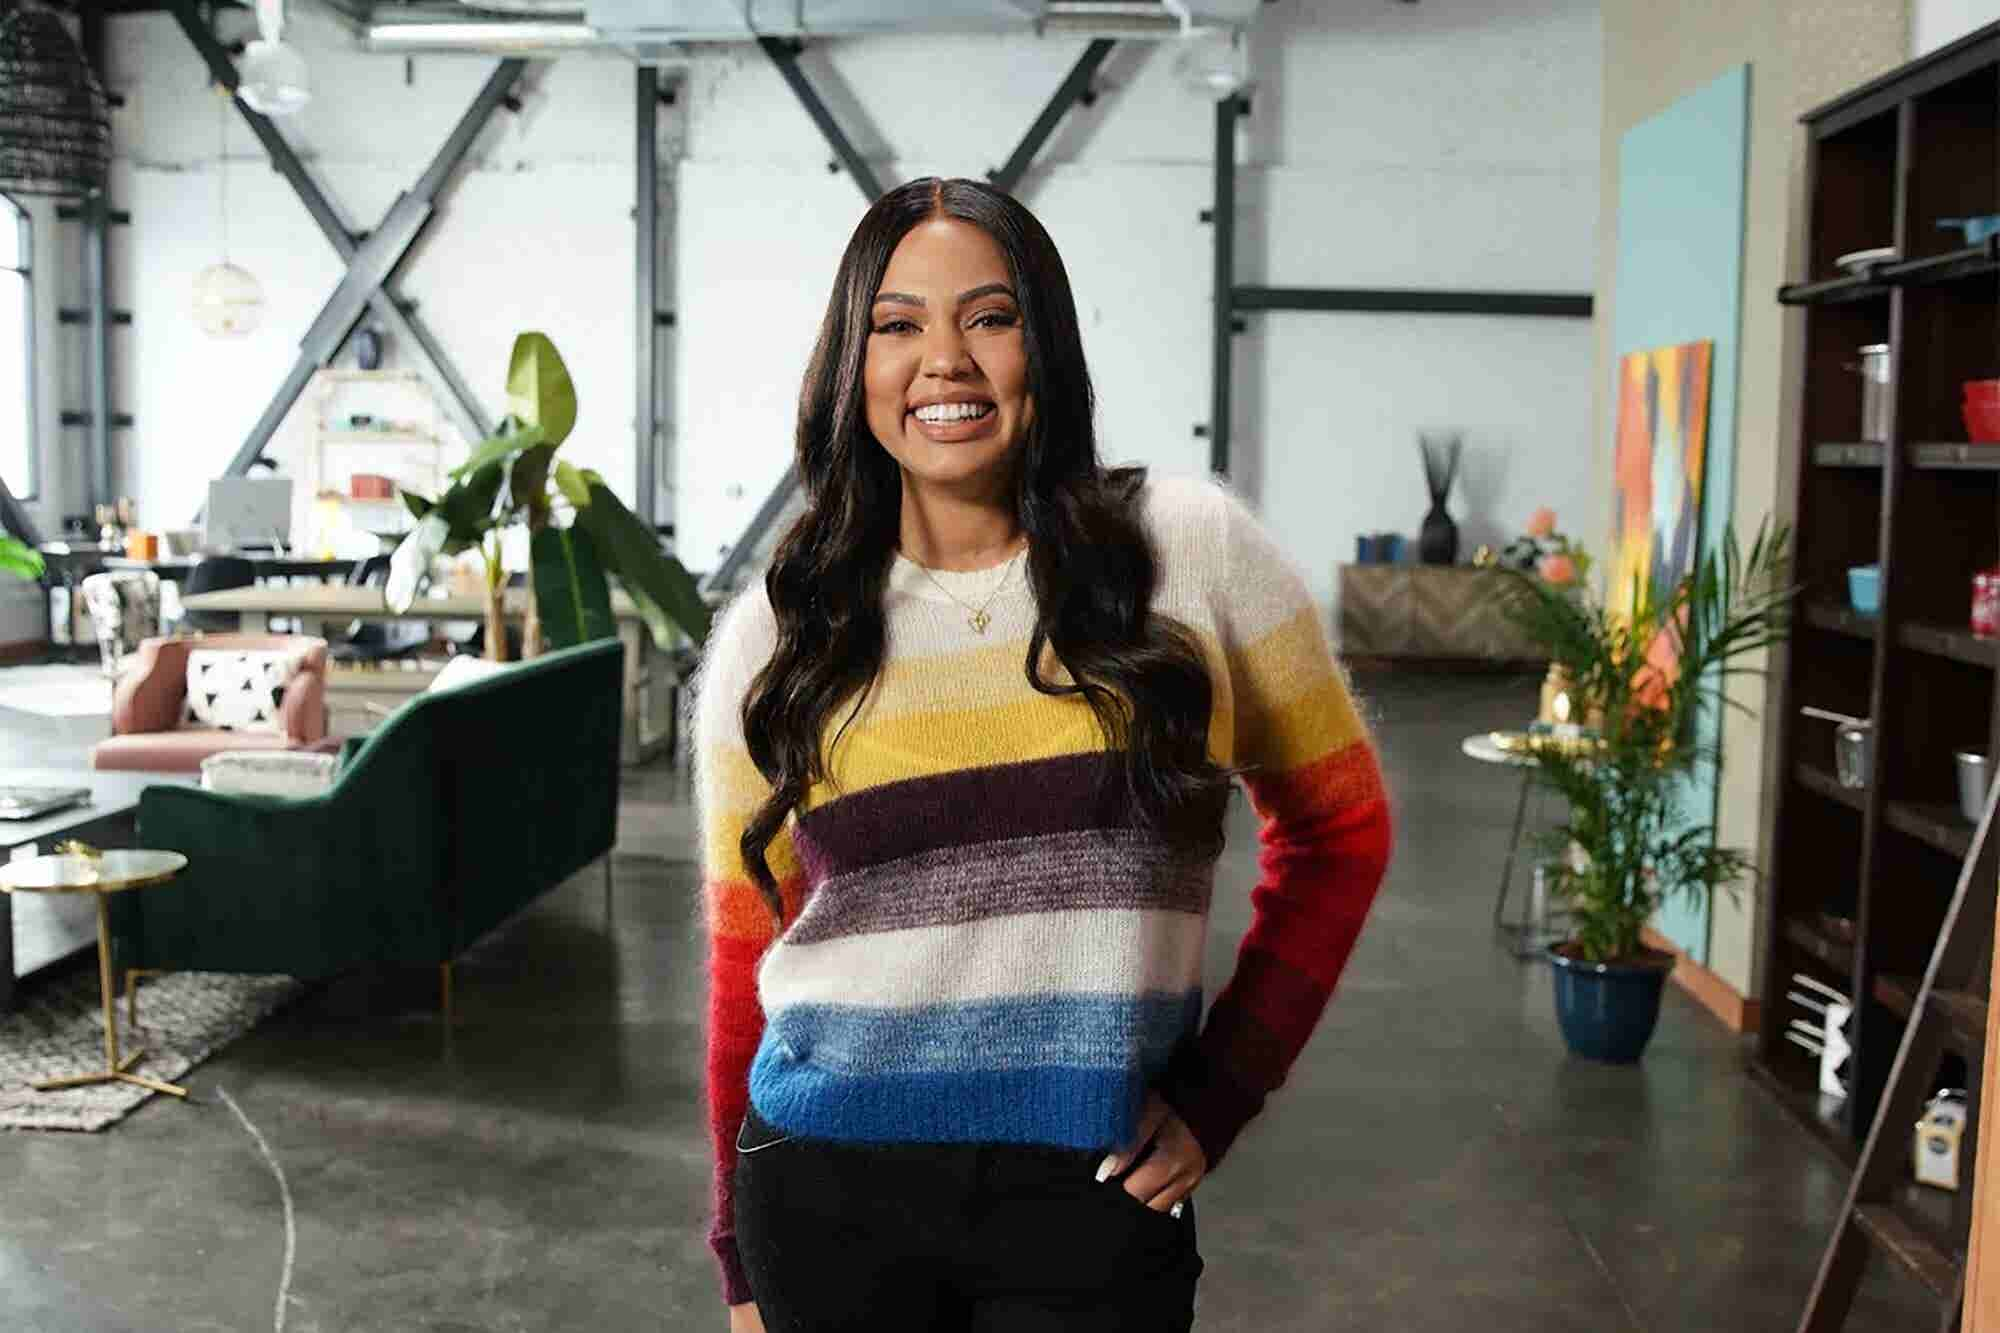 Ayesha Curry Shares How She Took Her Love of Cooking and Food and Built a 'Homemade' Empire